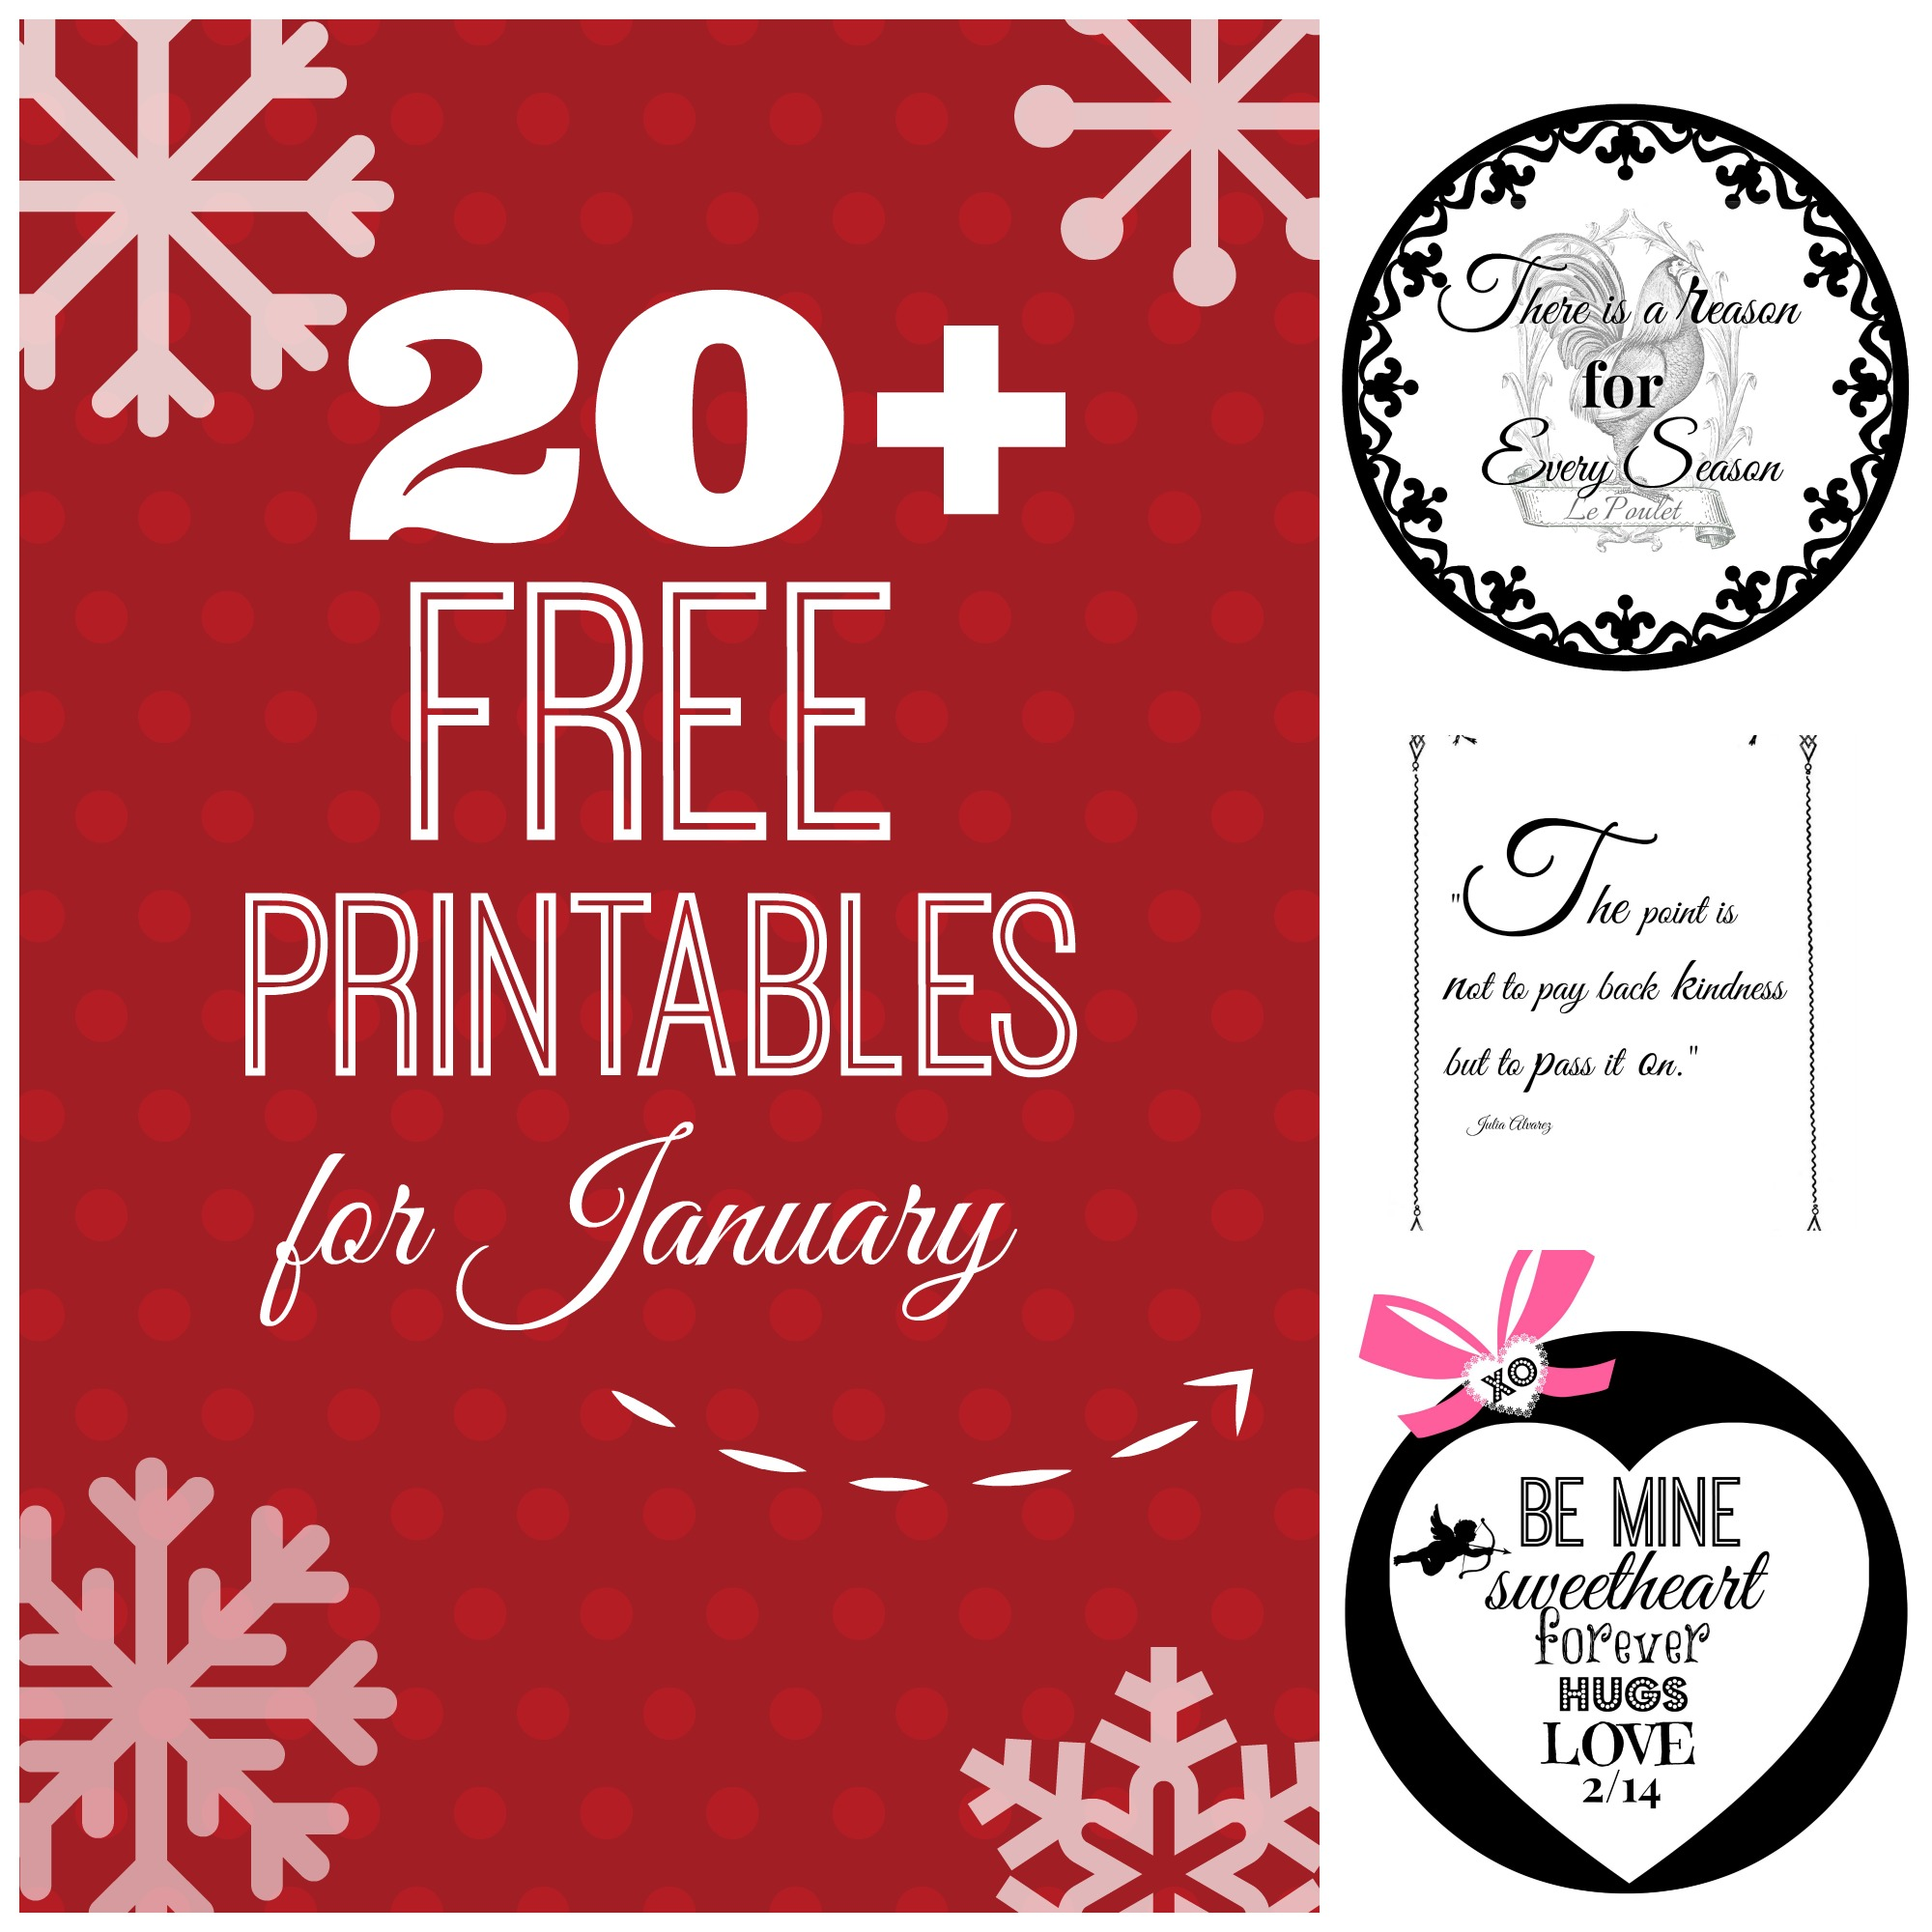 20 + free printables for January